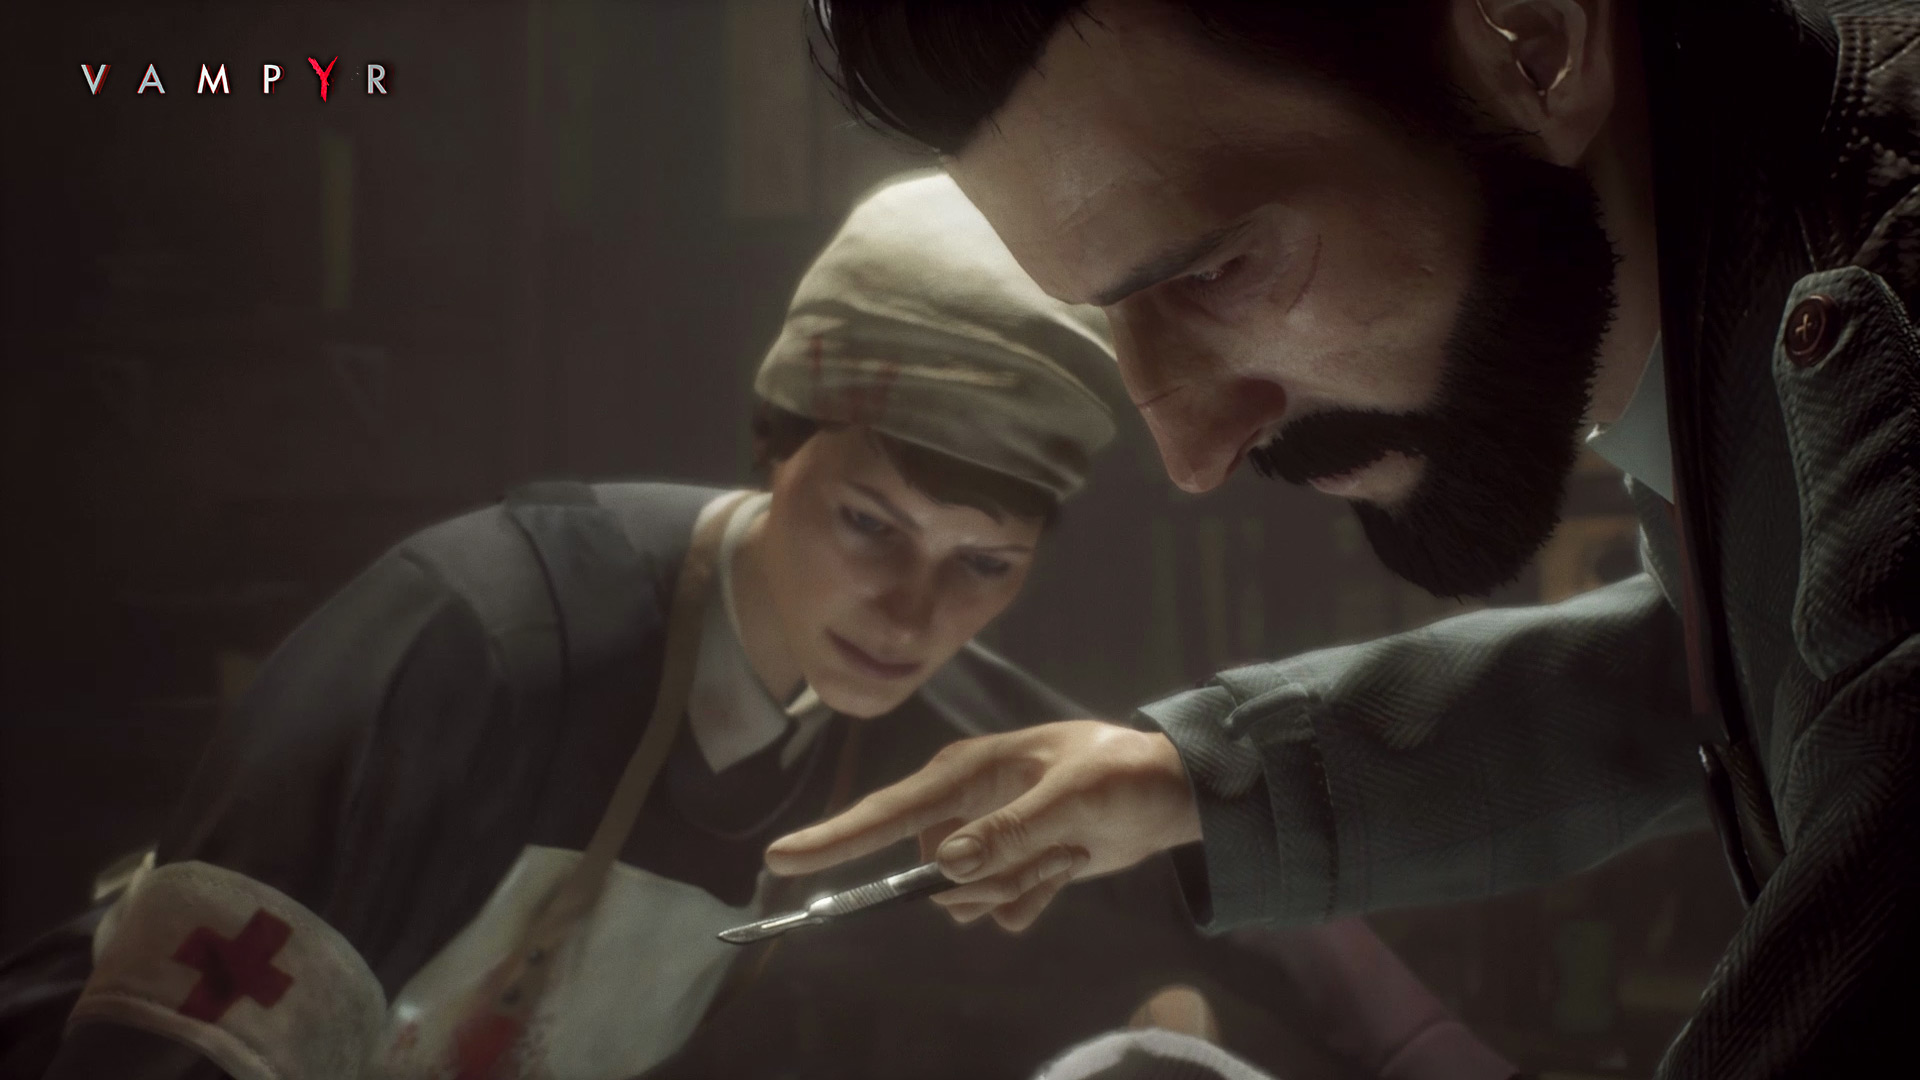 Vampyr's 1080p, 1440p and 4K System Requirements Revealed